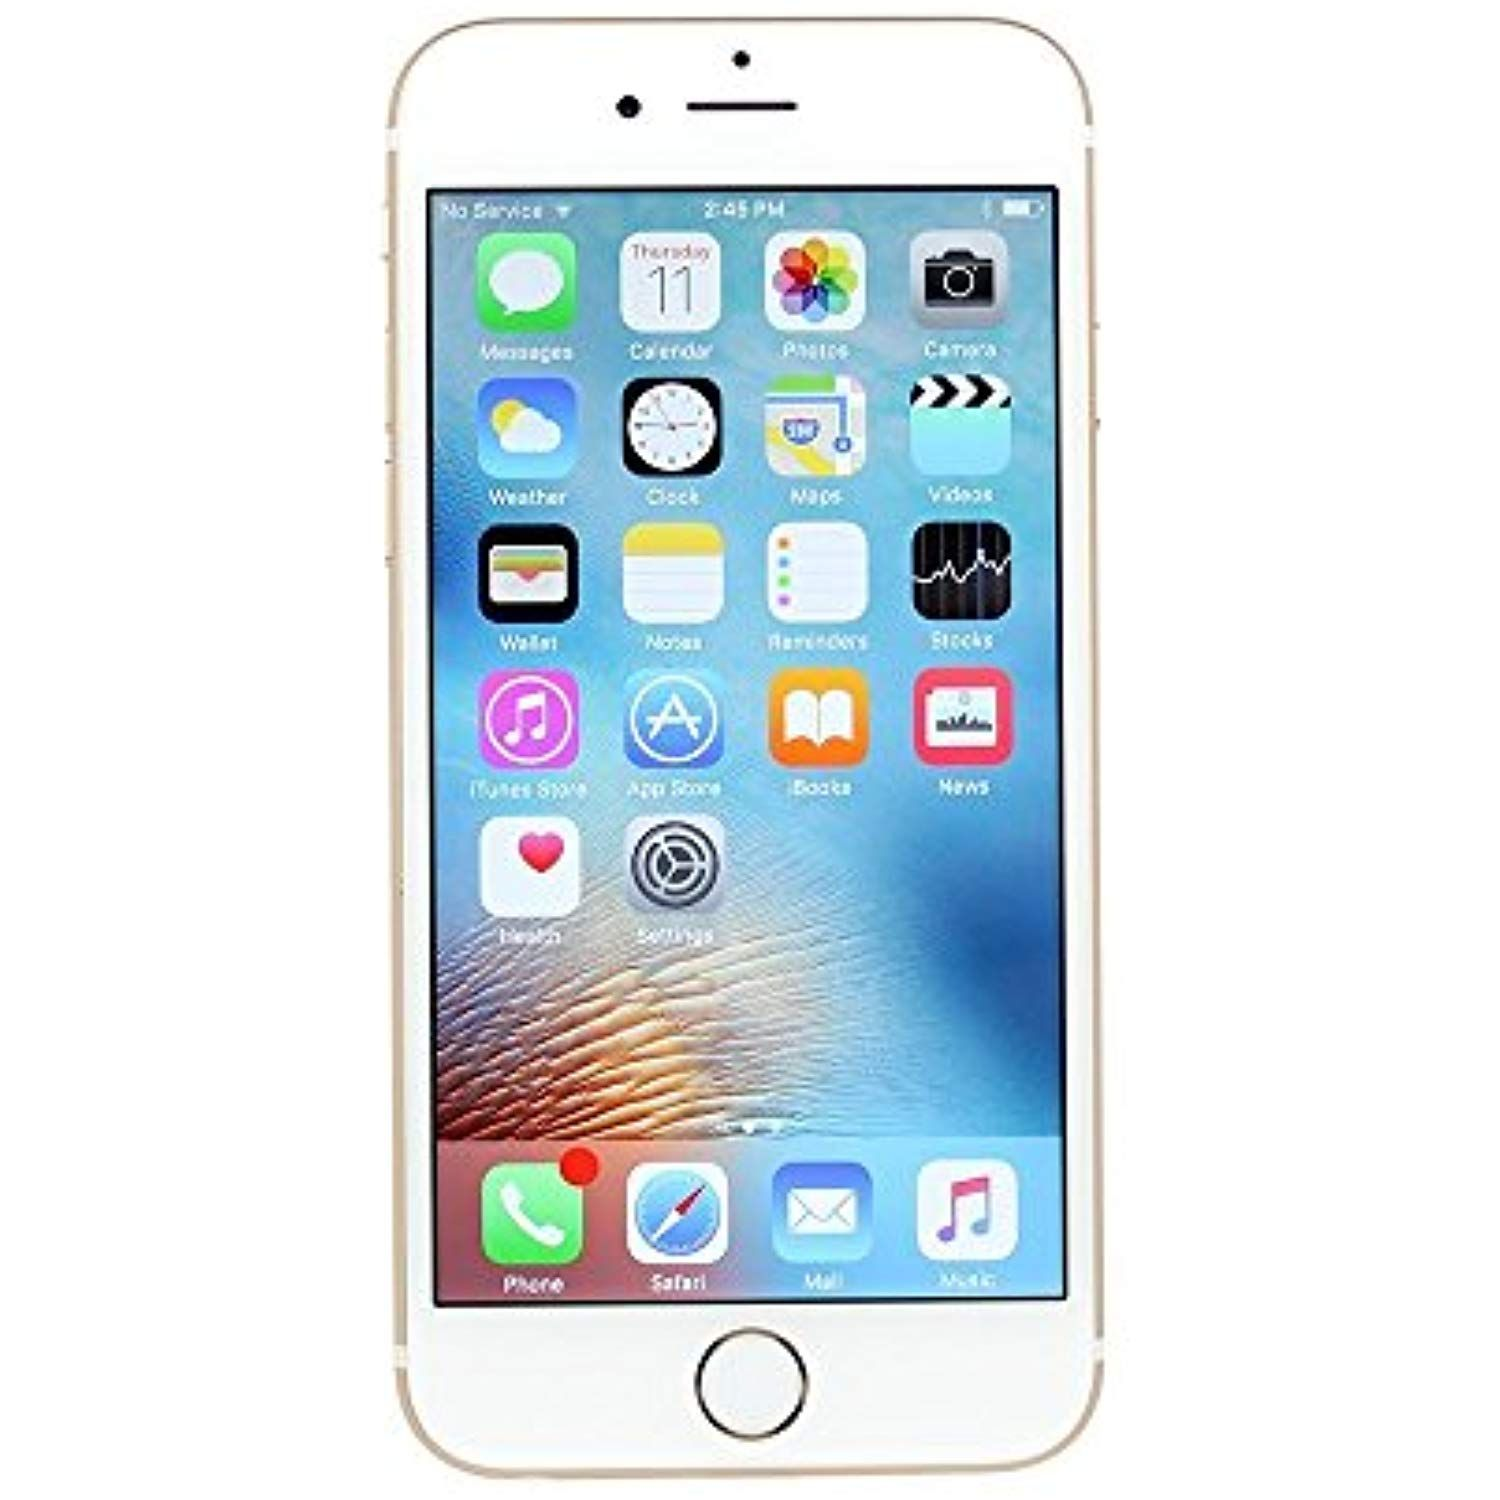 Apple Iphone 6s Plus Atandt 16gb Gold Certified Refurbished You Can Get Additional Details At The I Apple Iphone 6s Apple Iphone 6s Plus Apple Iphone